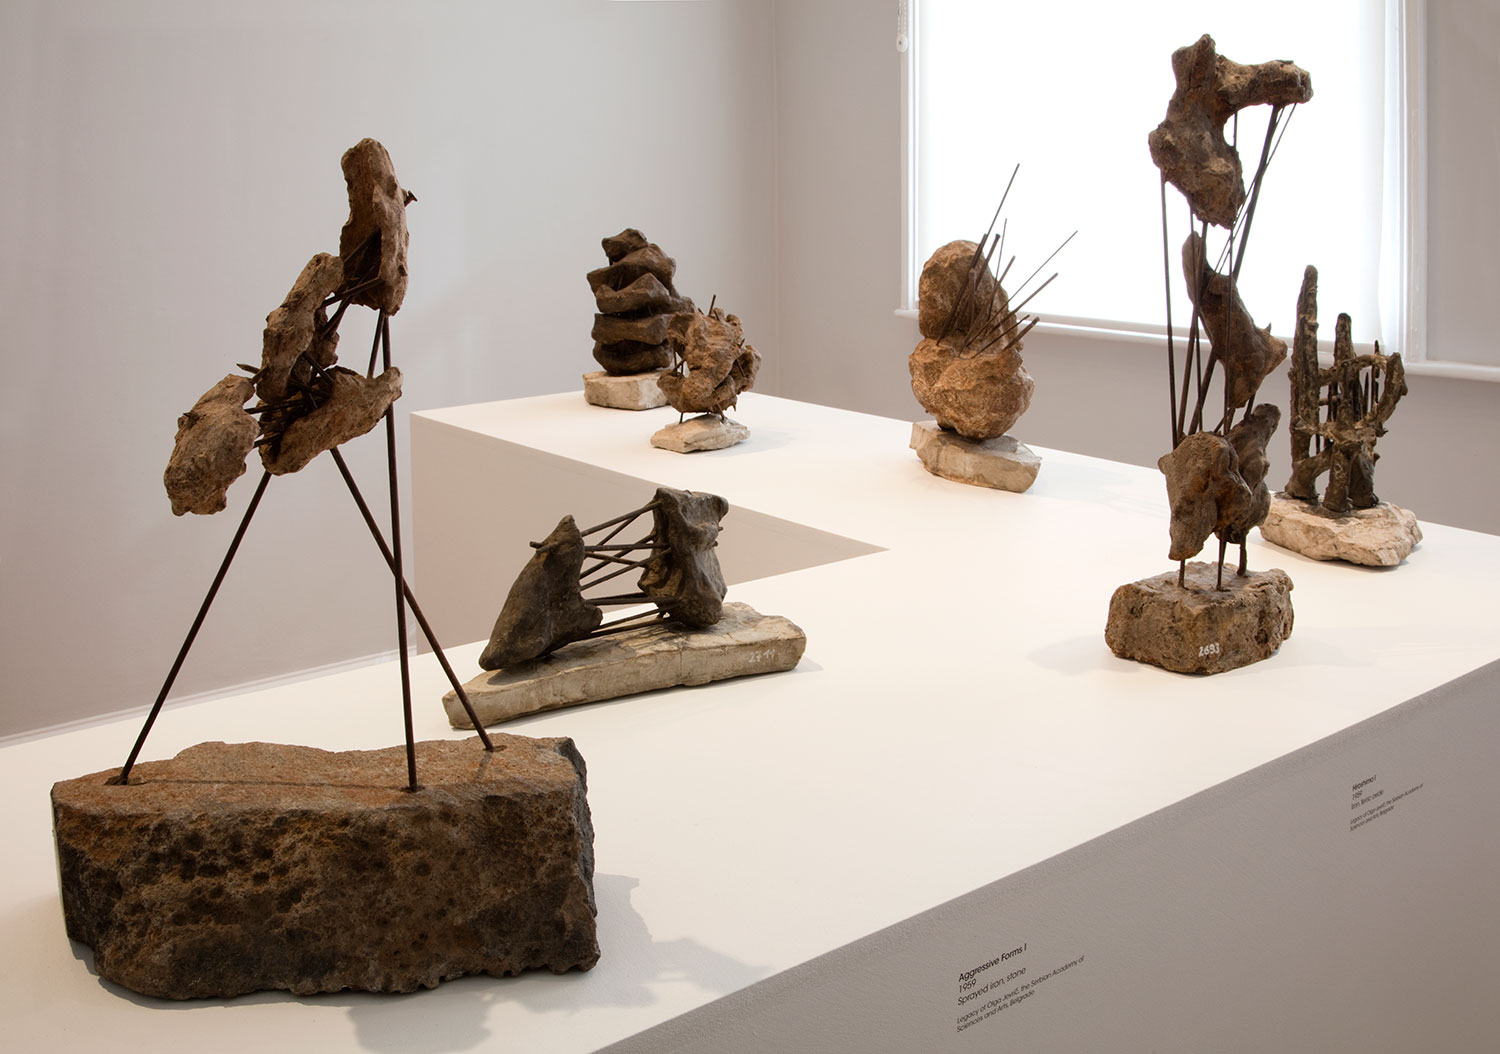 Installation view of Olga Jevrić: Proposals for Monuments 2